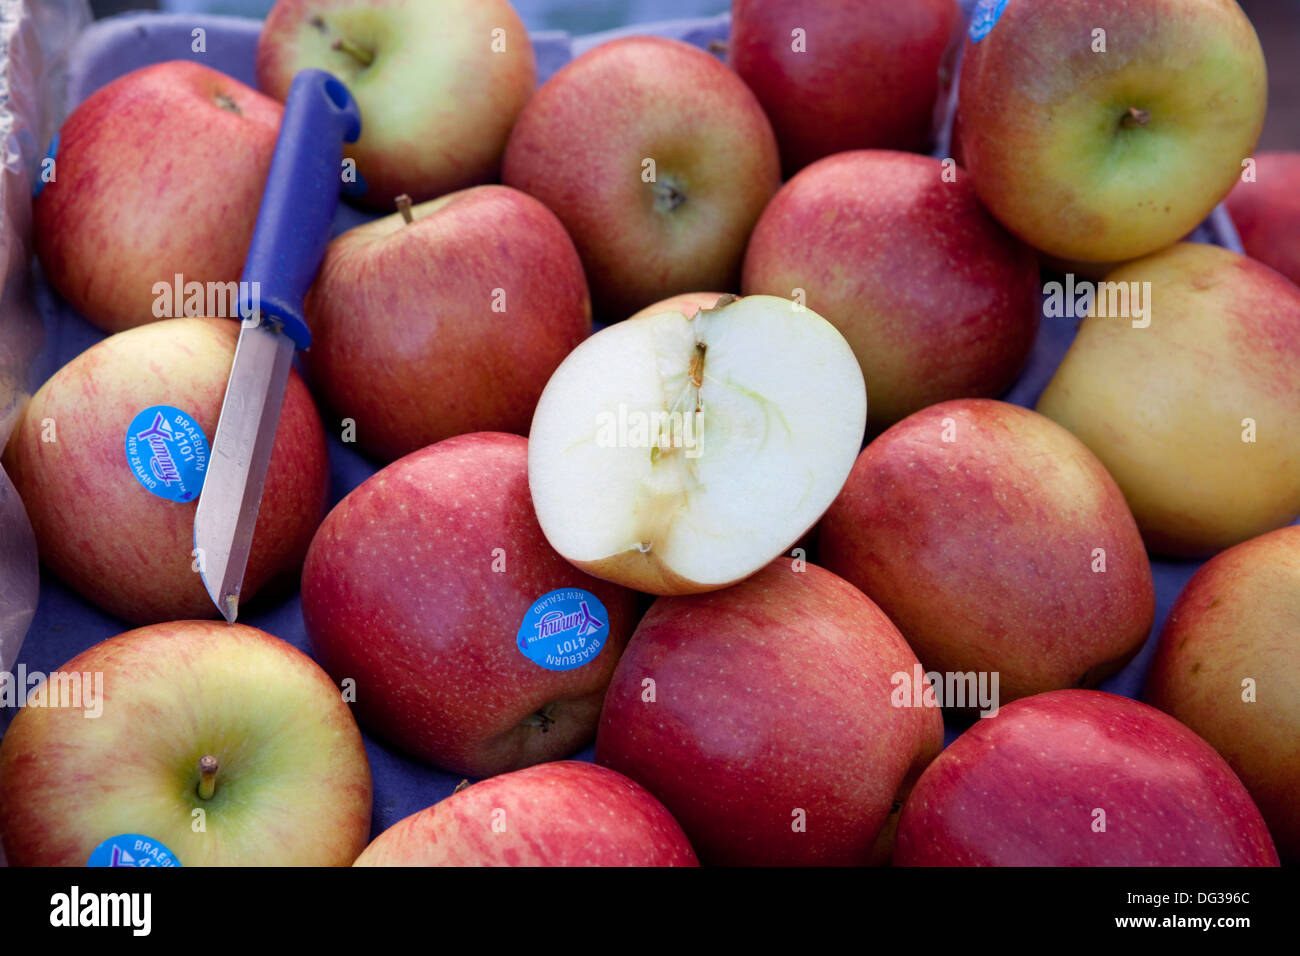 Apples (Malus x domestica) at a market stall, Hanover, Lower Saxony, Germany, Europe - Stock Image